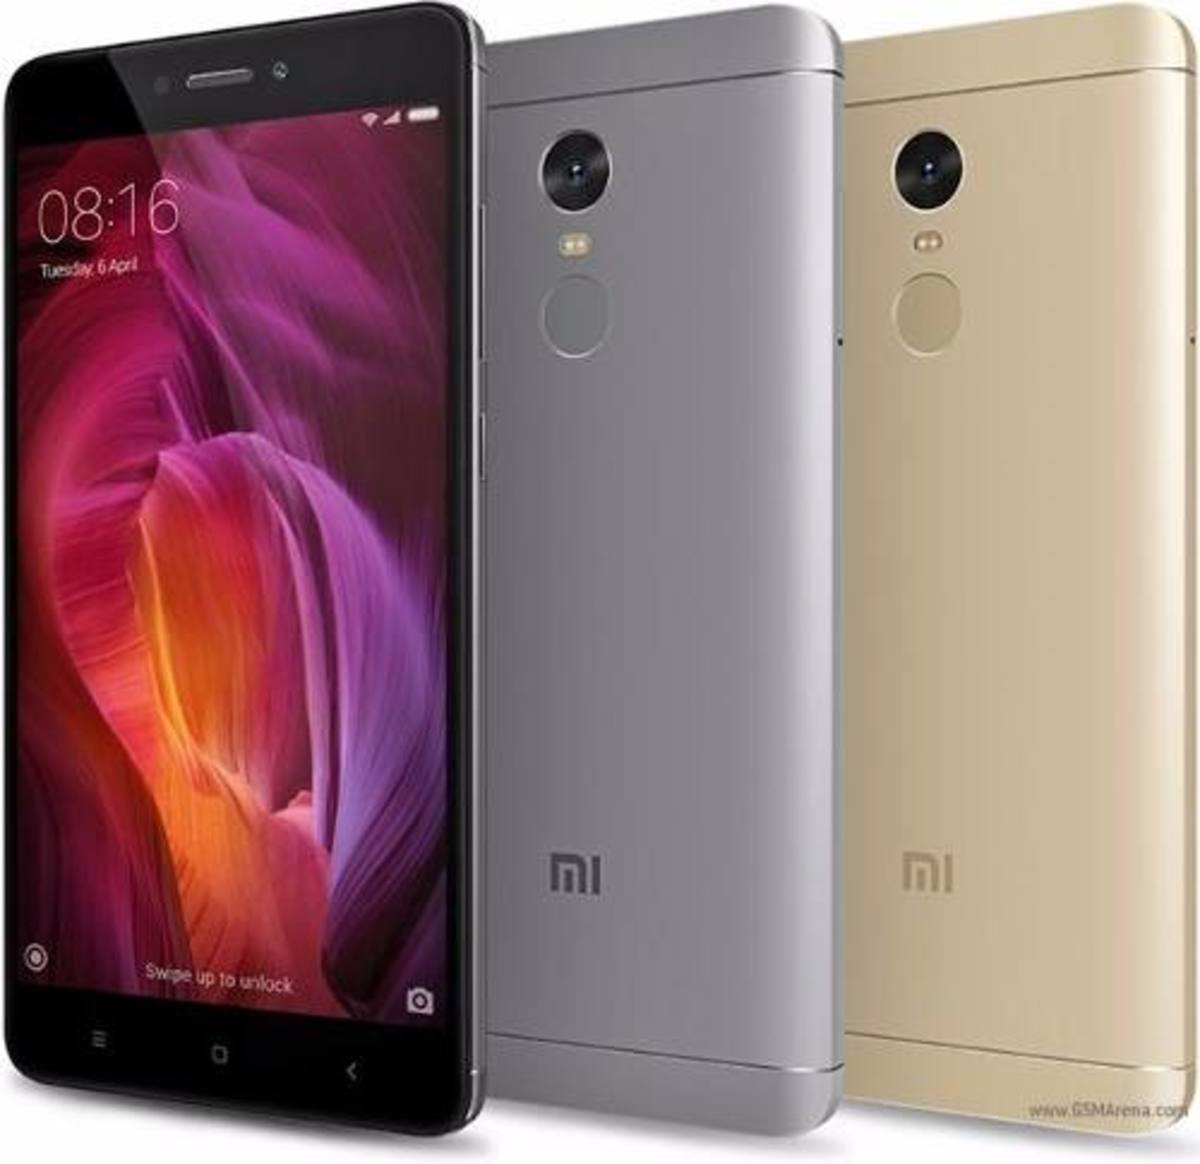 Xiaomi Redmi Note 4 comes in 3 different colors